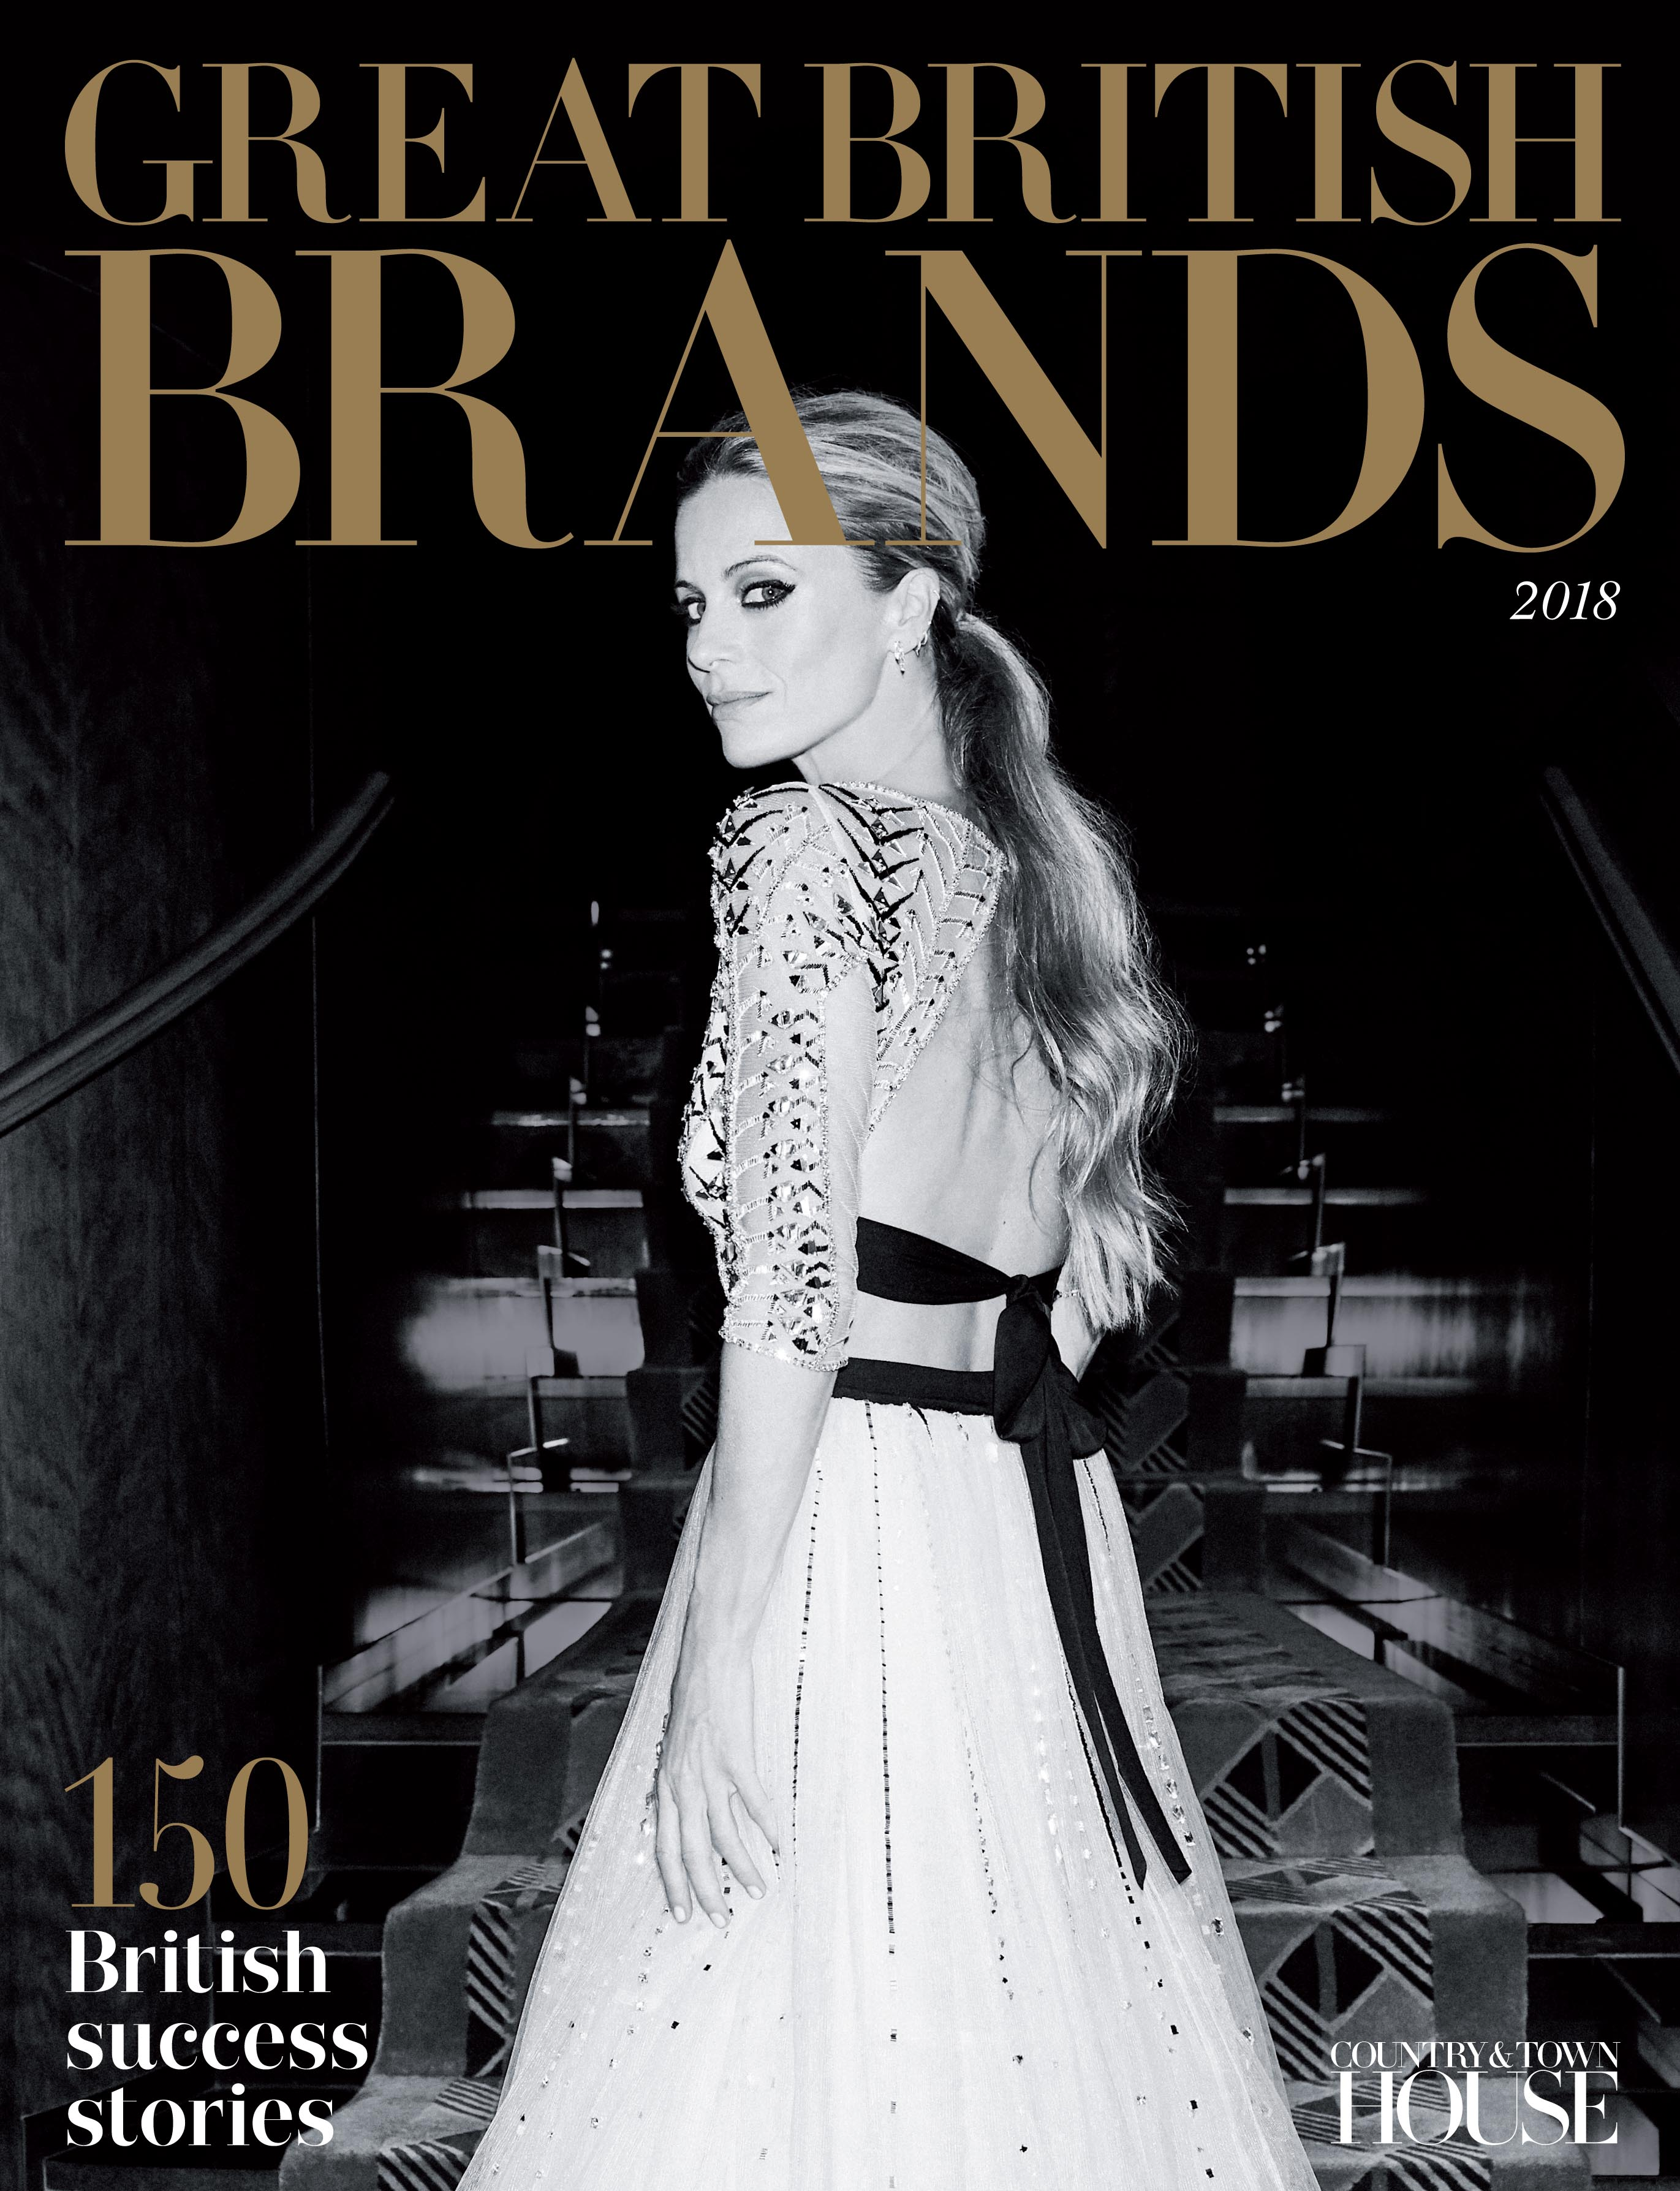 IN THE PRESS – GREAT BRITISH BRANDS 2018